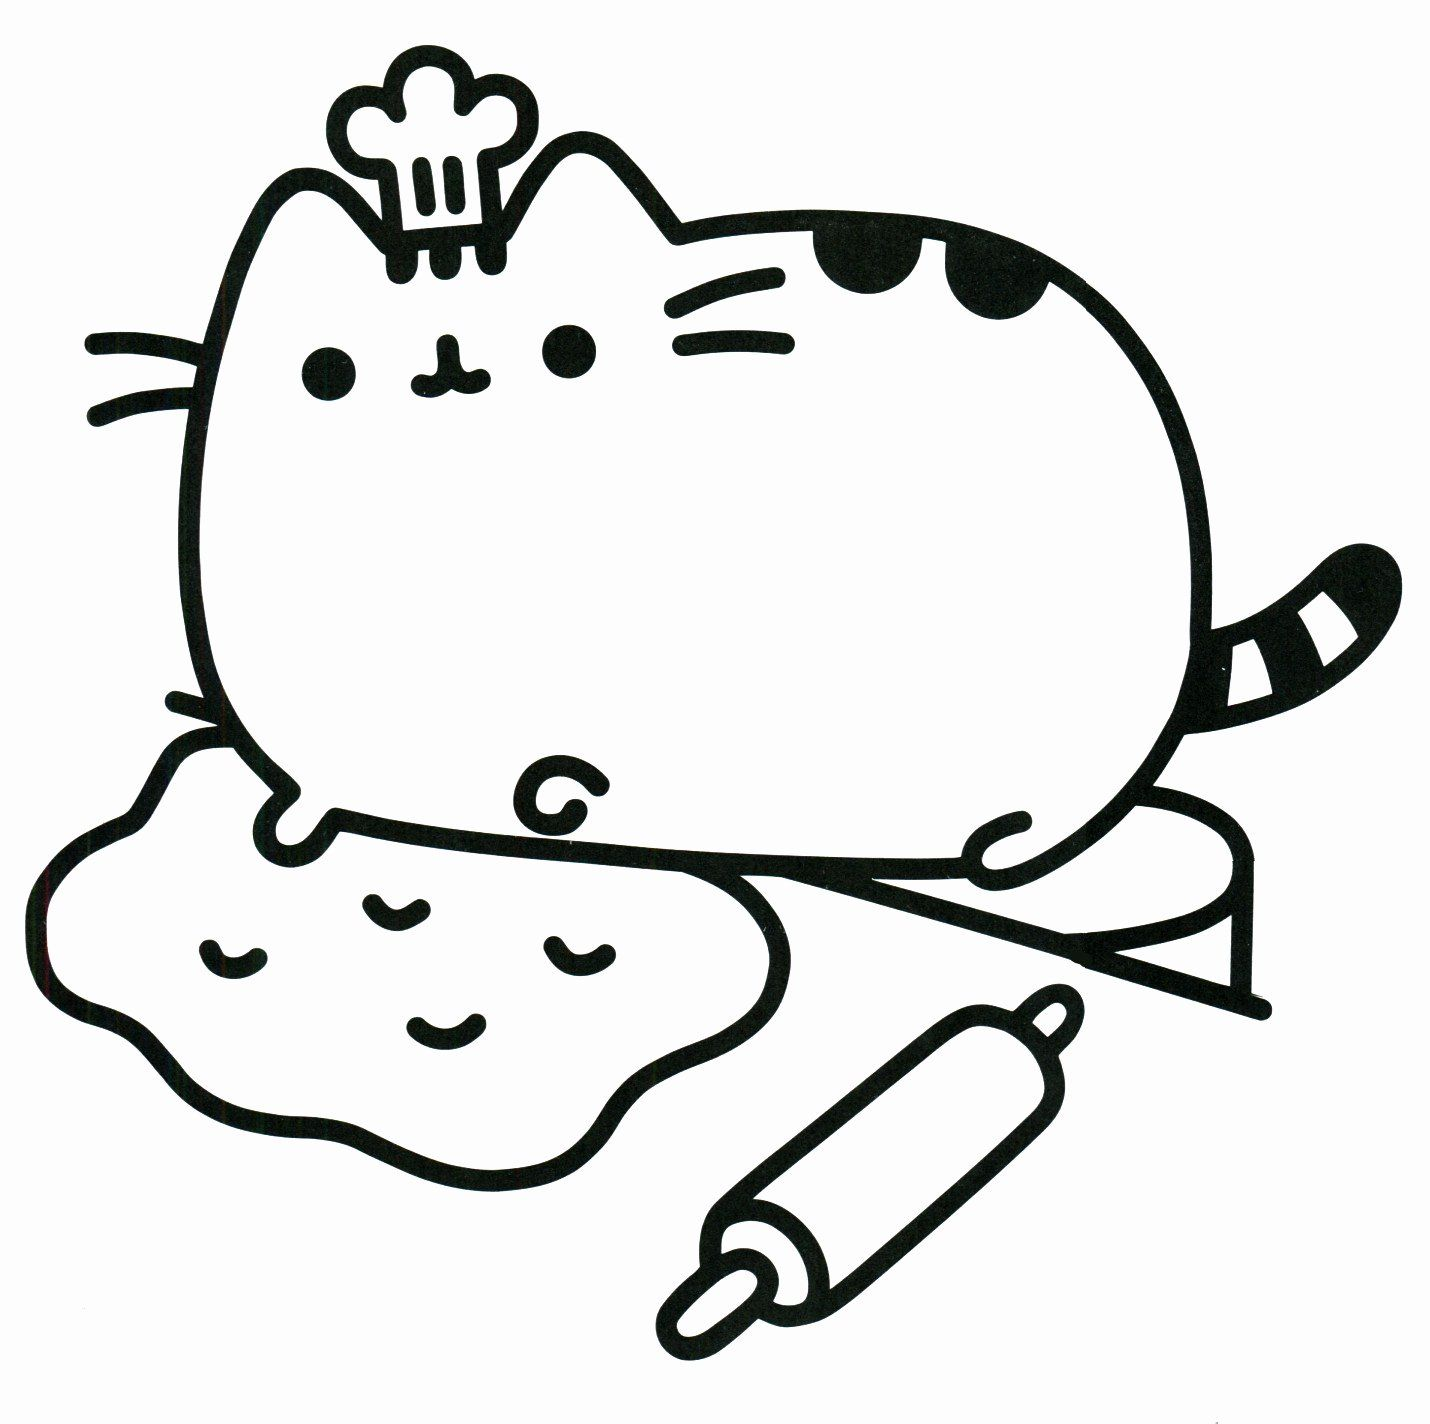 President Obama Coloring Page Unique Nyan Cat Coloring Pages Best Cat Coloring Pages Printable En 2020 Coloriage Kawaii Coloriage Dessin Kawaii A Colorier